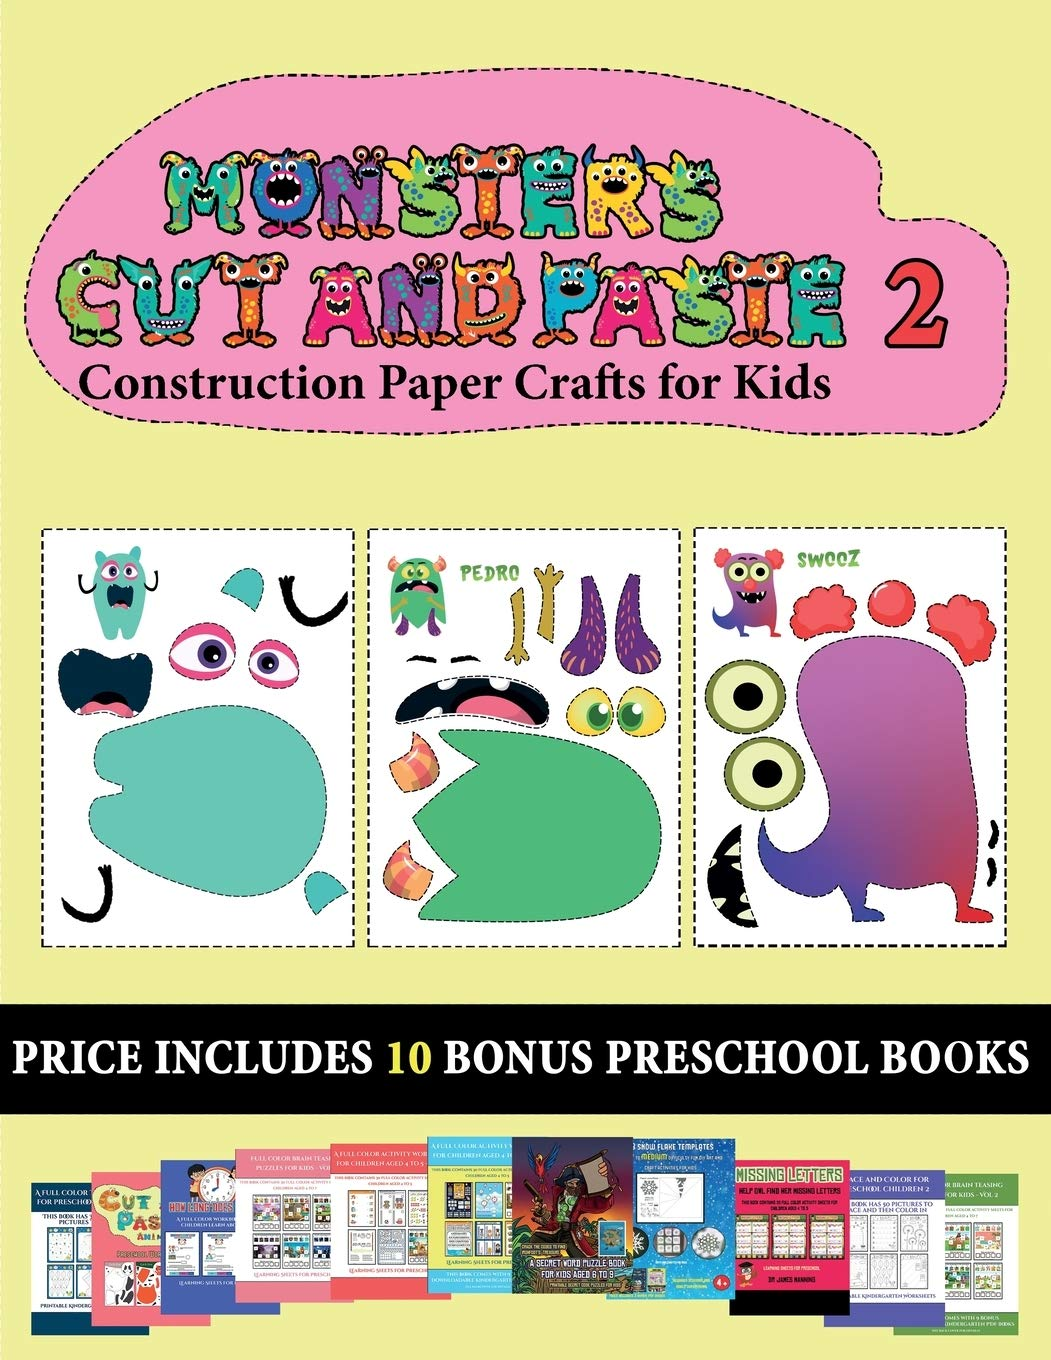 Construction Paper Crafts For Kids 20 Full Color Kindergarten Cut And Paste Activity Sheets Monsters 2 This Book Comes With Collection Of Start To His Her Education Books Are Designe Manning James